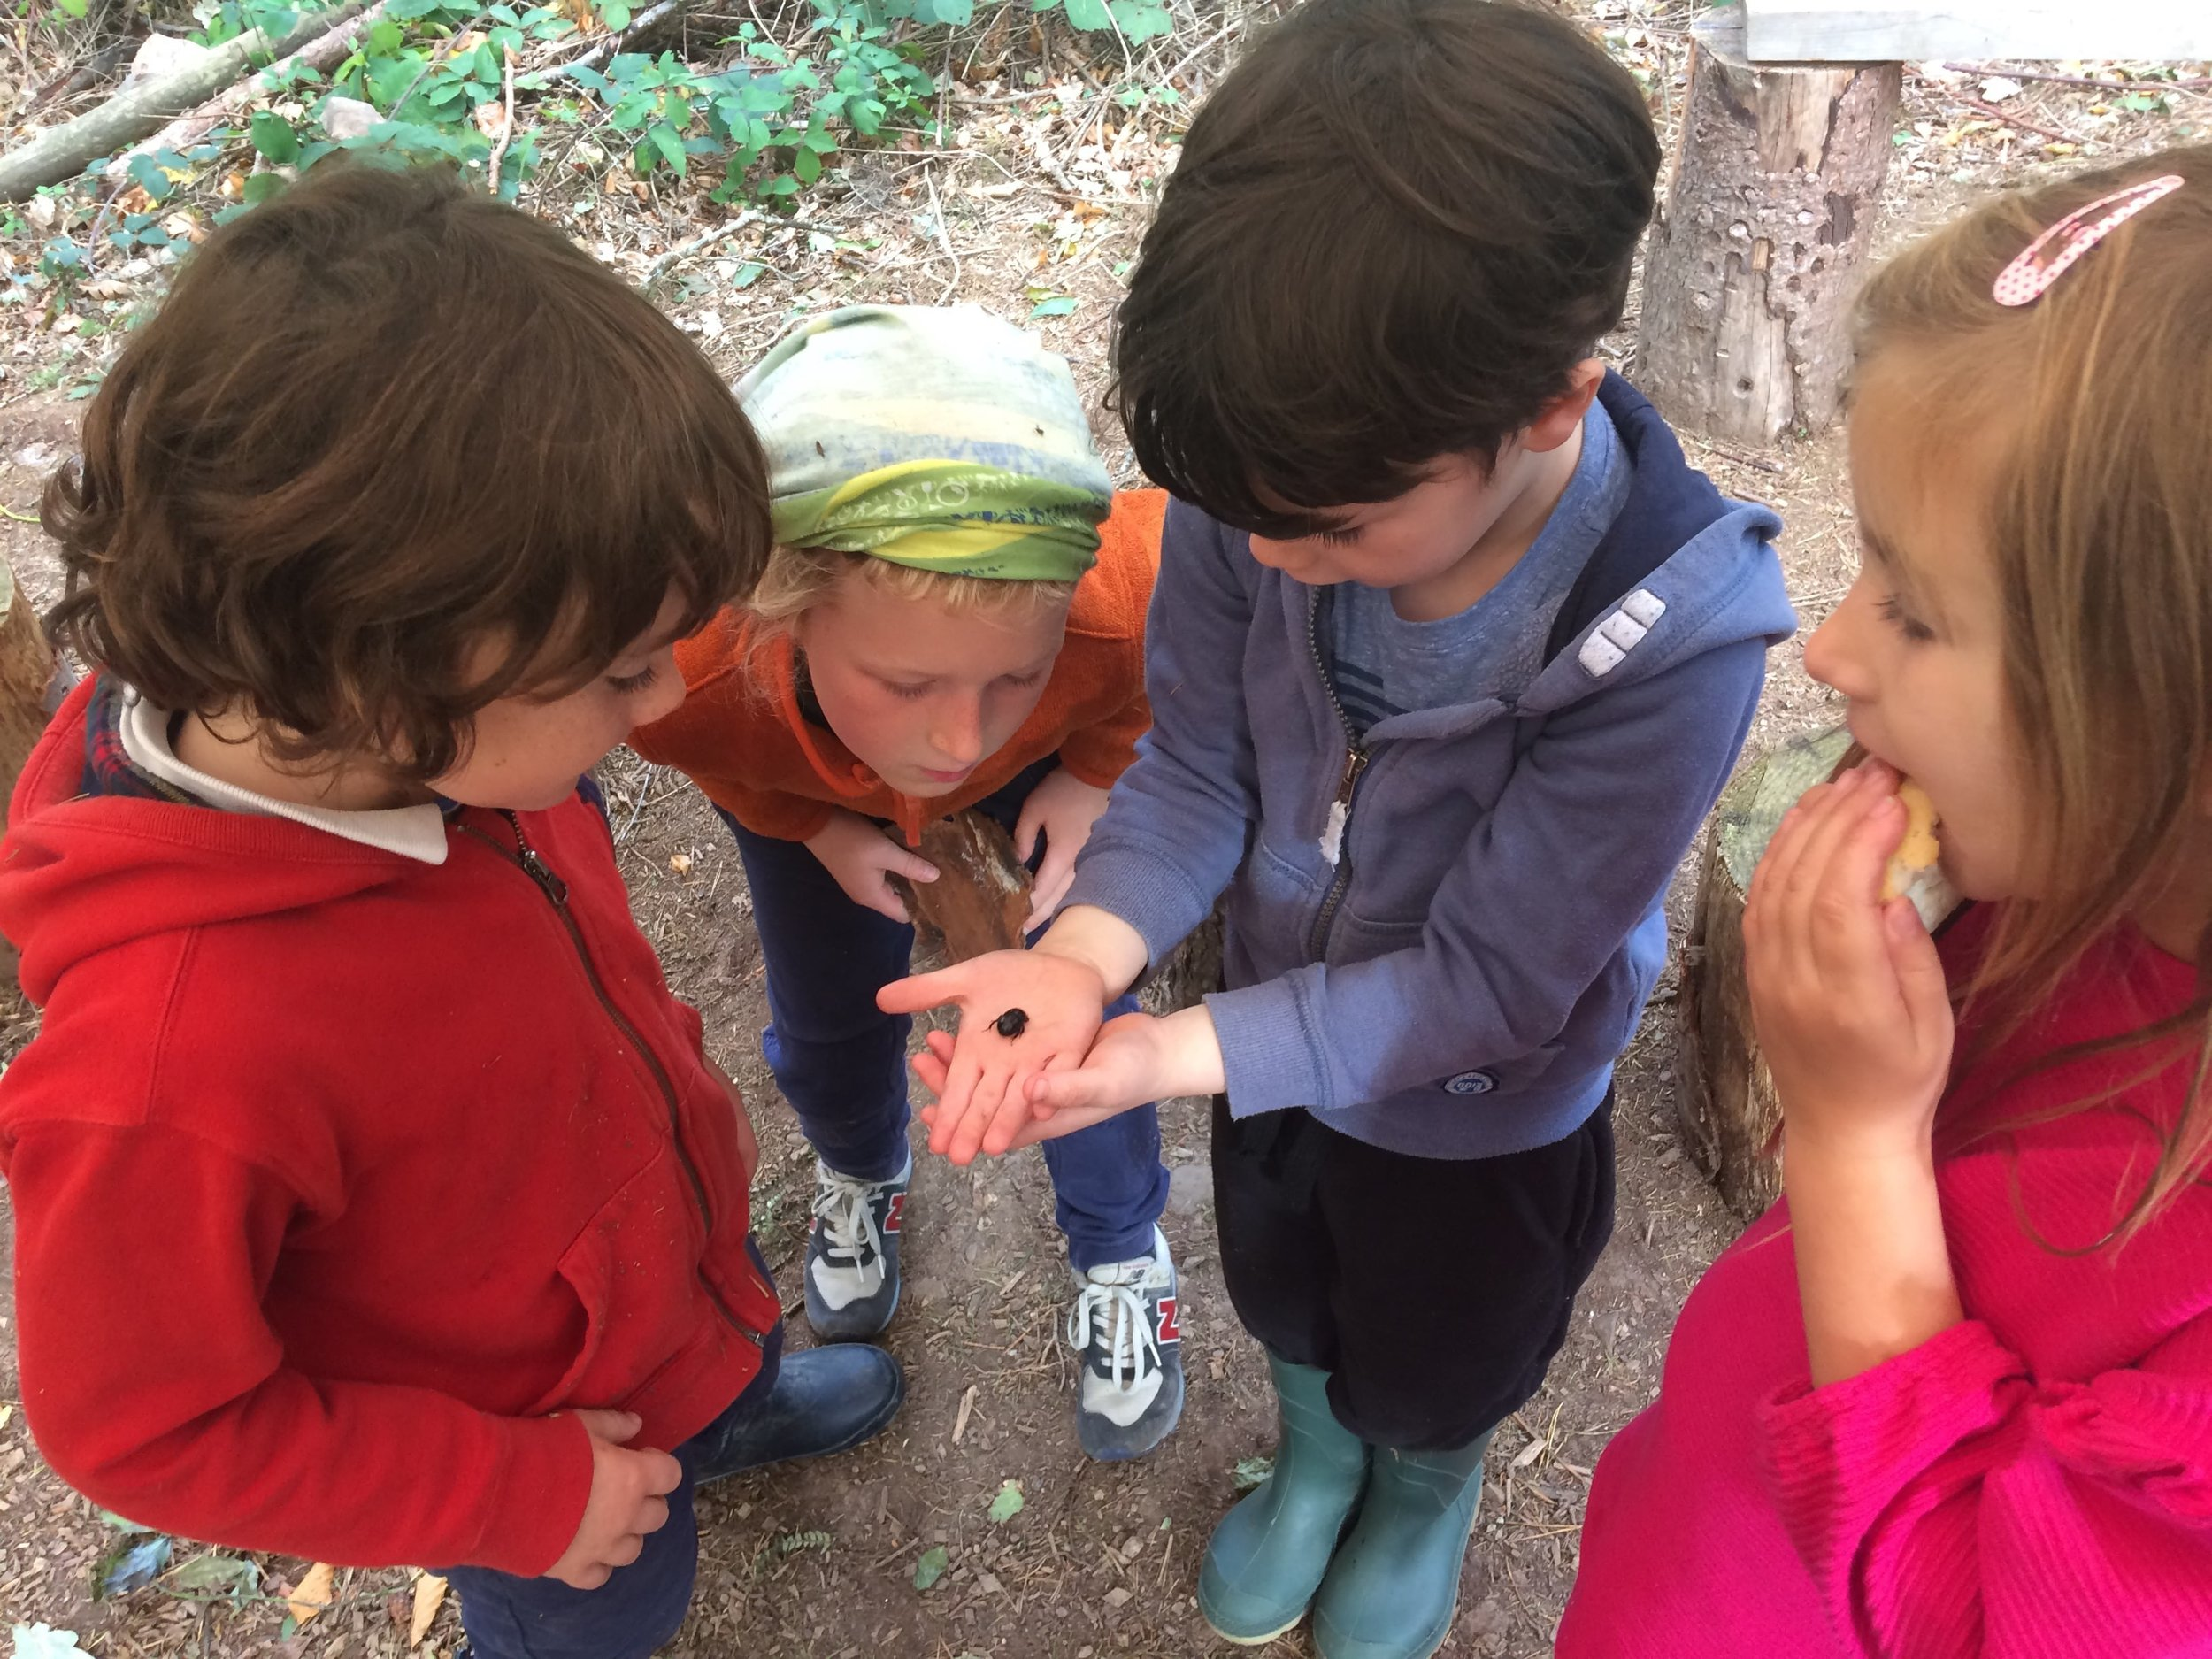 Activities page the exploration and discovery of nature-min.jpg